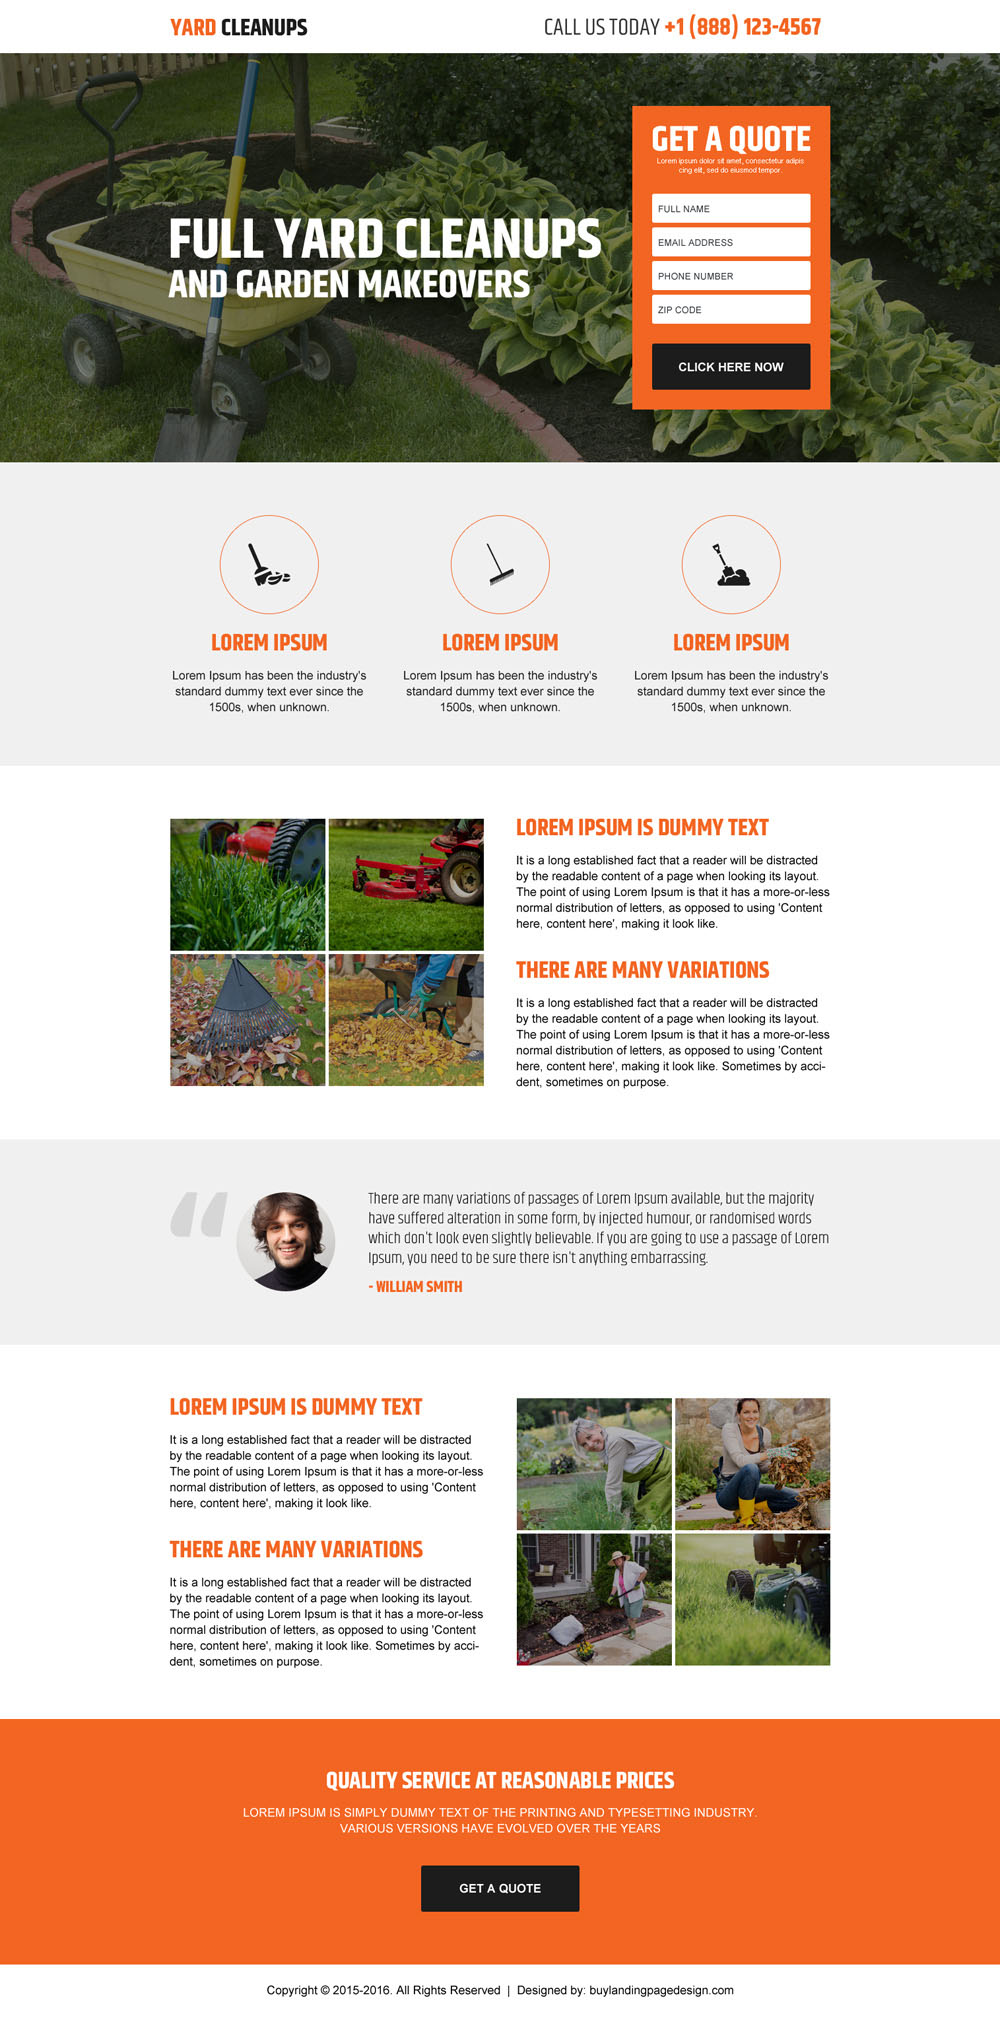 yard-cleaning-service-converting-lead-capture-landing-page-design-002